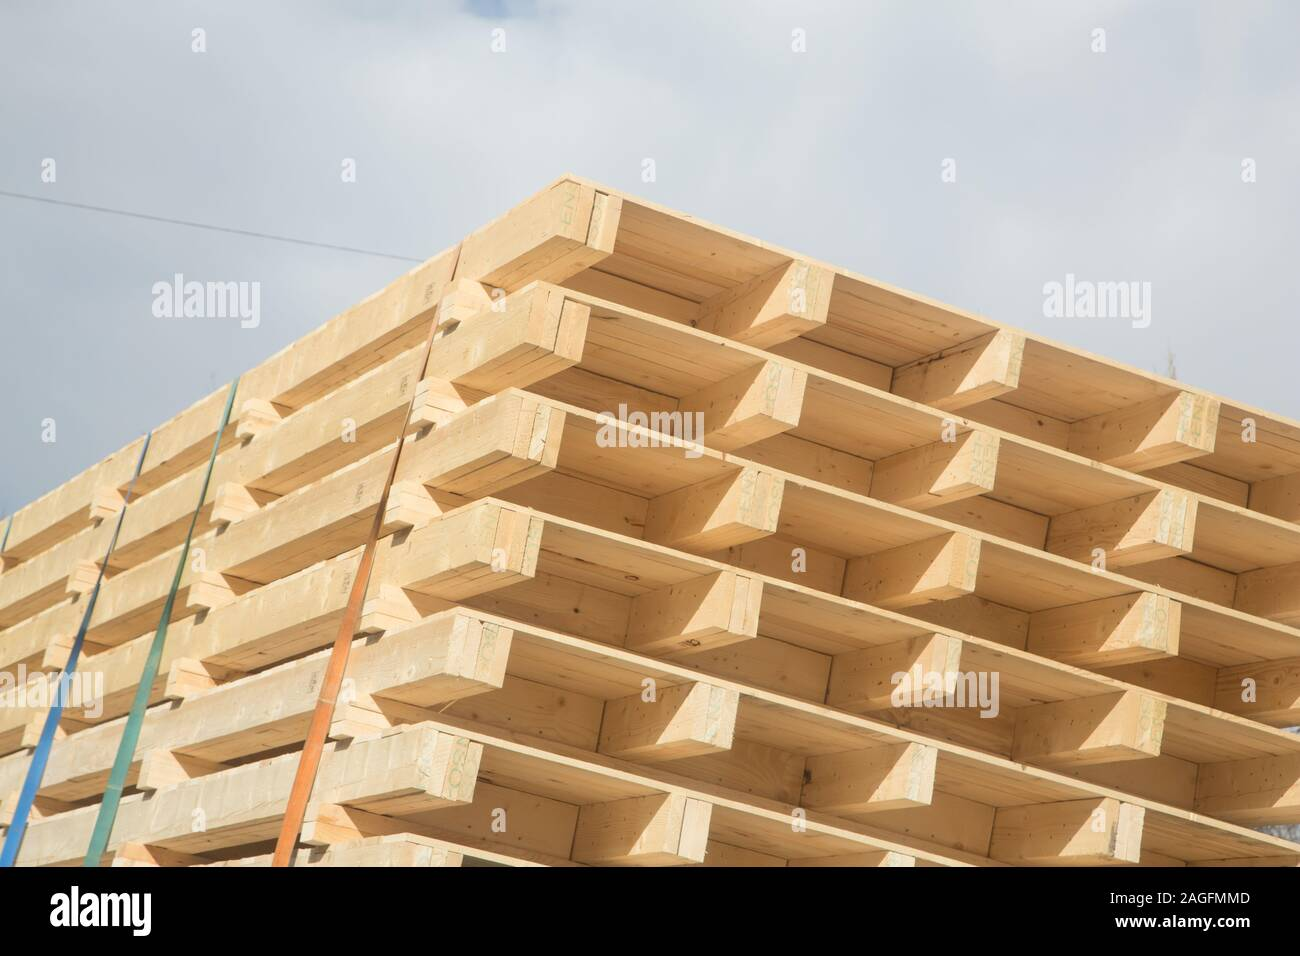 Wooden building elements loaded on a truck in traffic Stock Photo